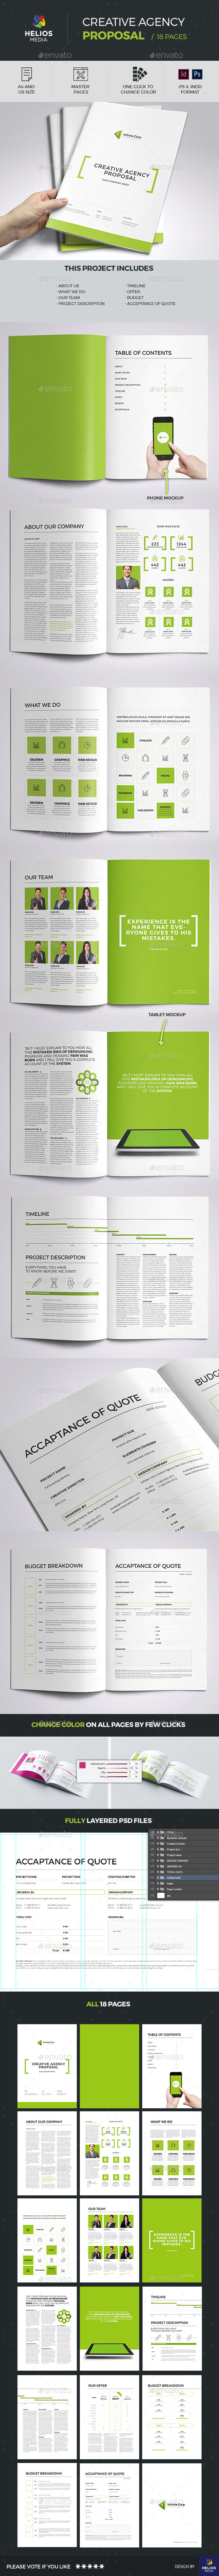 Propsal Template  - Proposals & Invoices Stationery